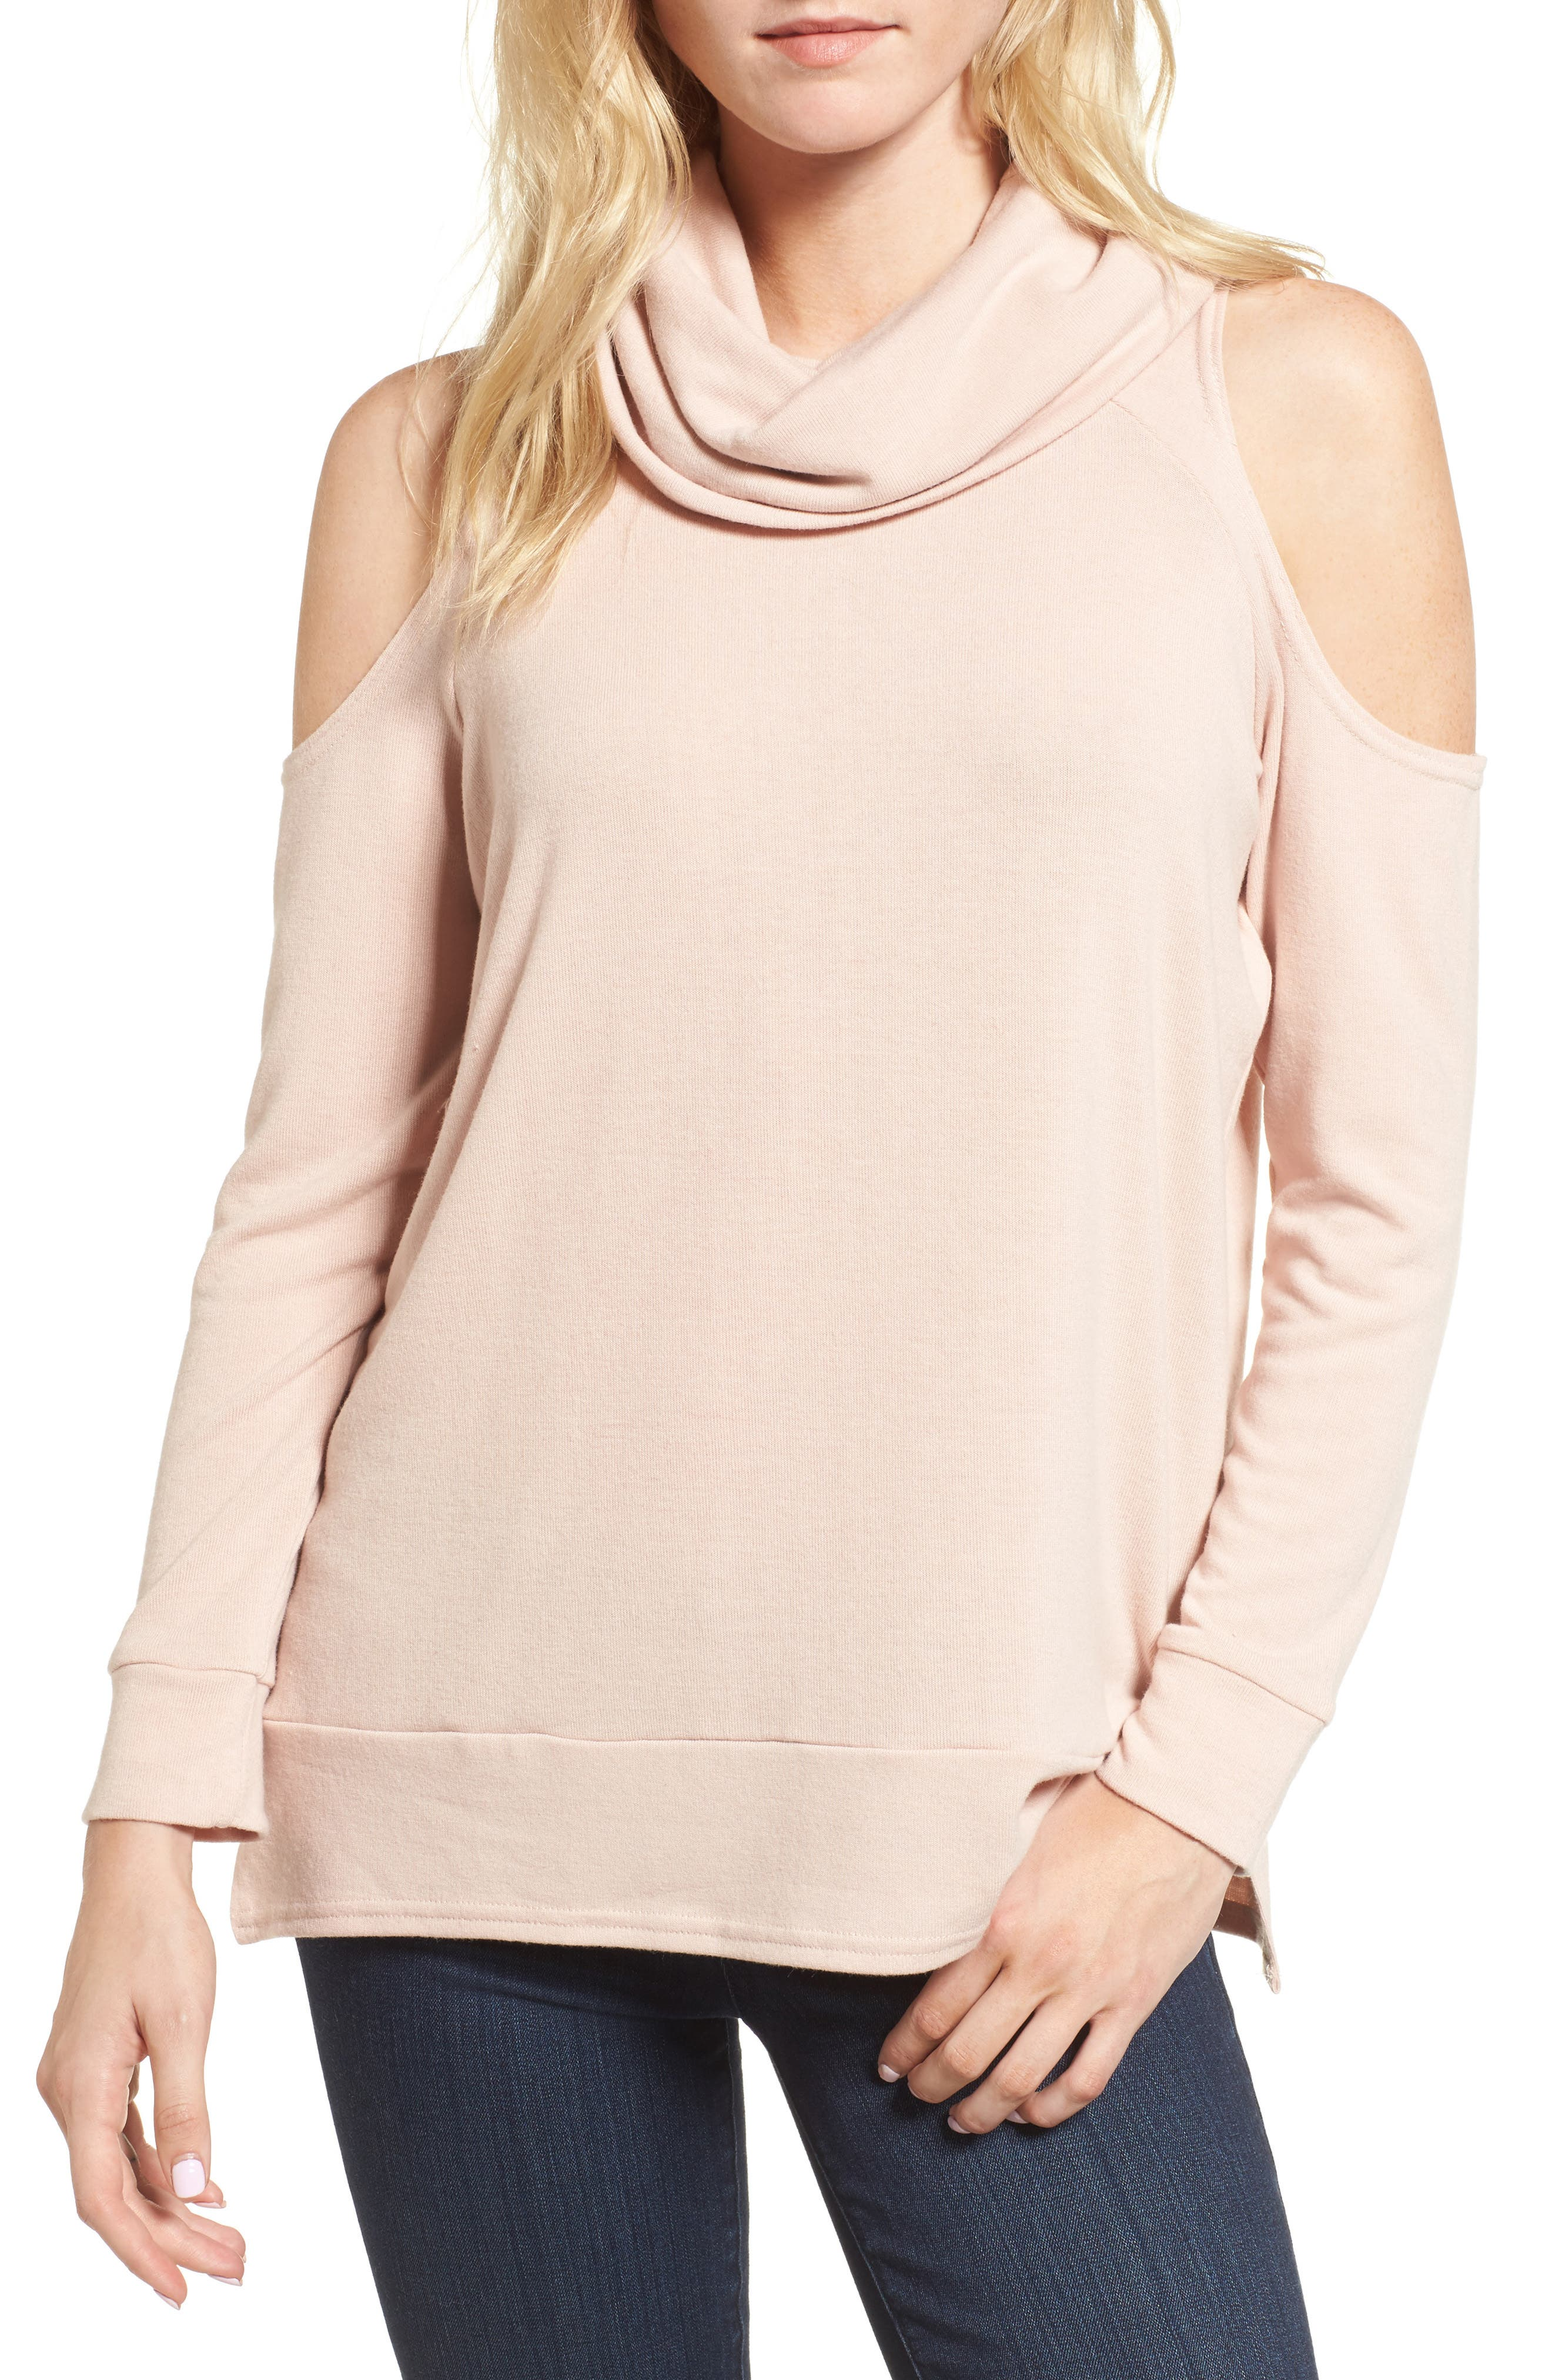 cupcakes and cashmere Malden Cold Shoulder Sweater